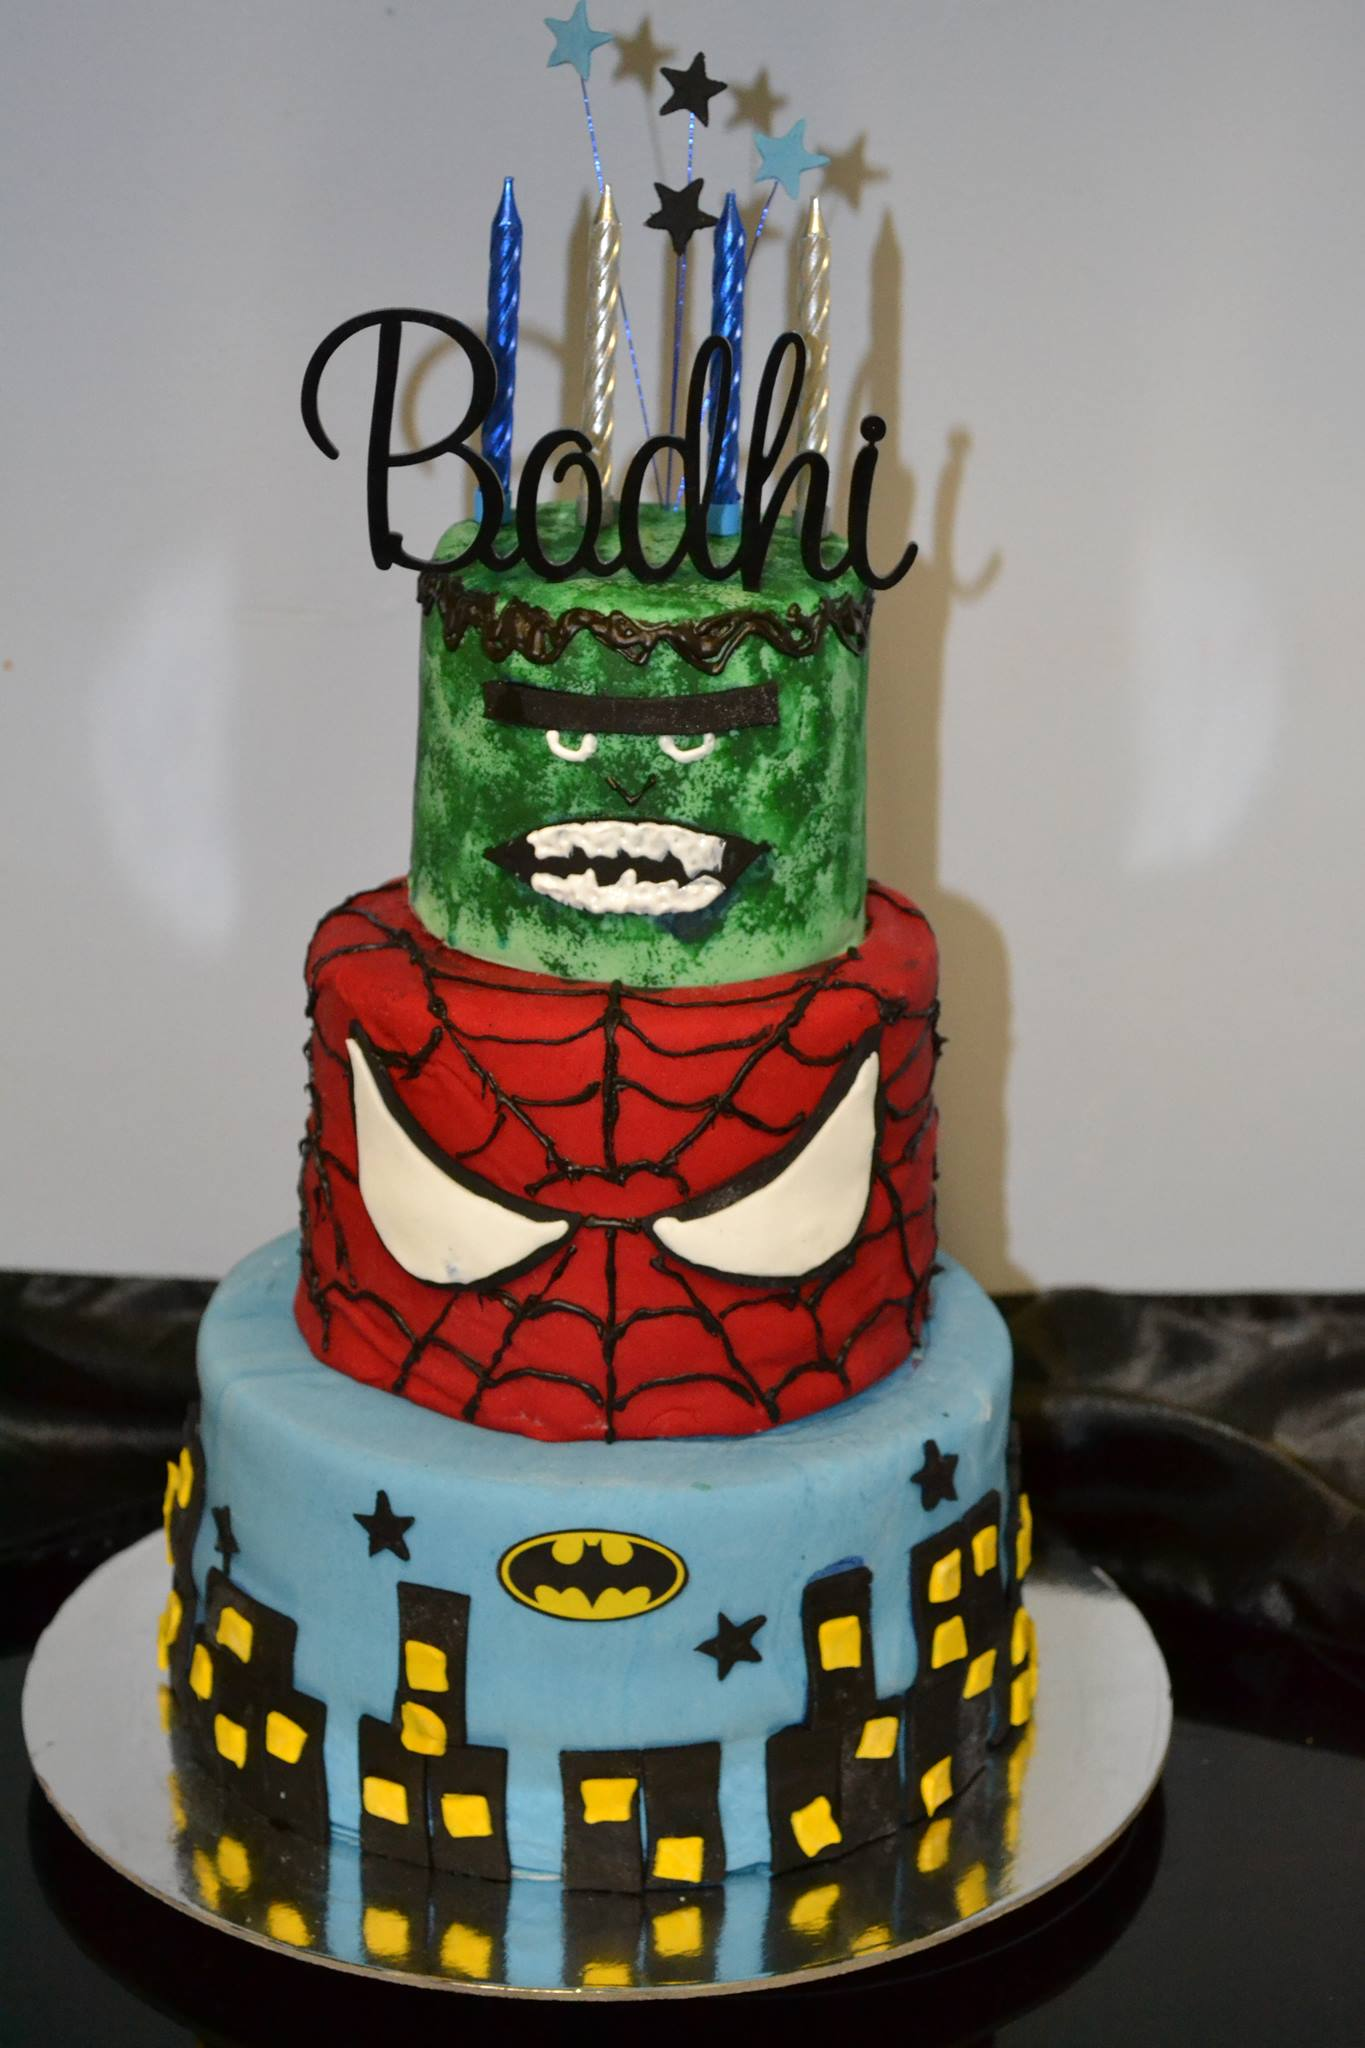 Netty's Superheroes Cake